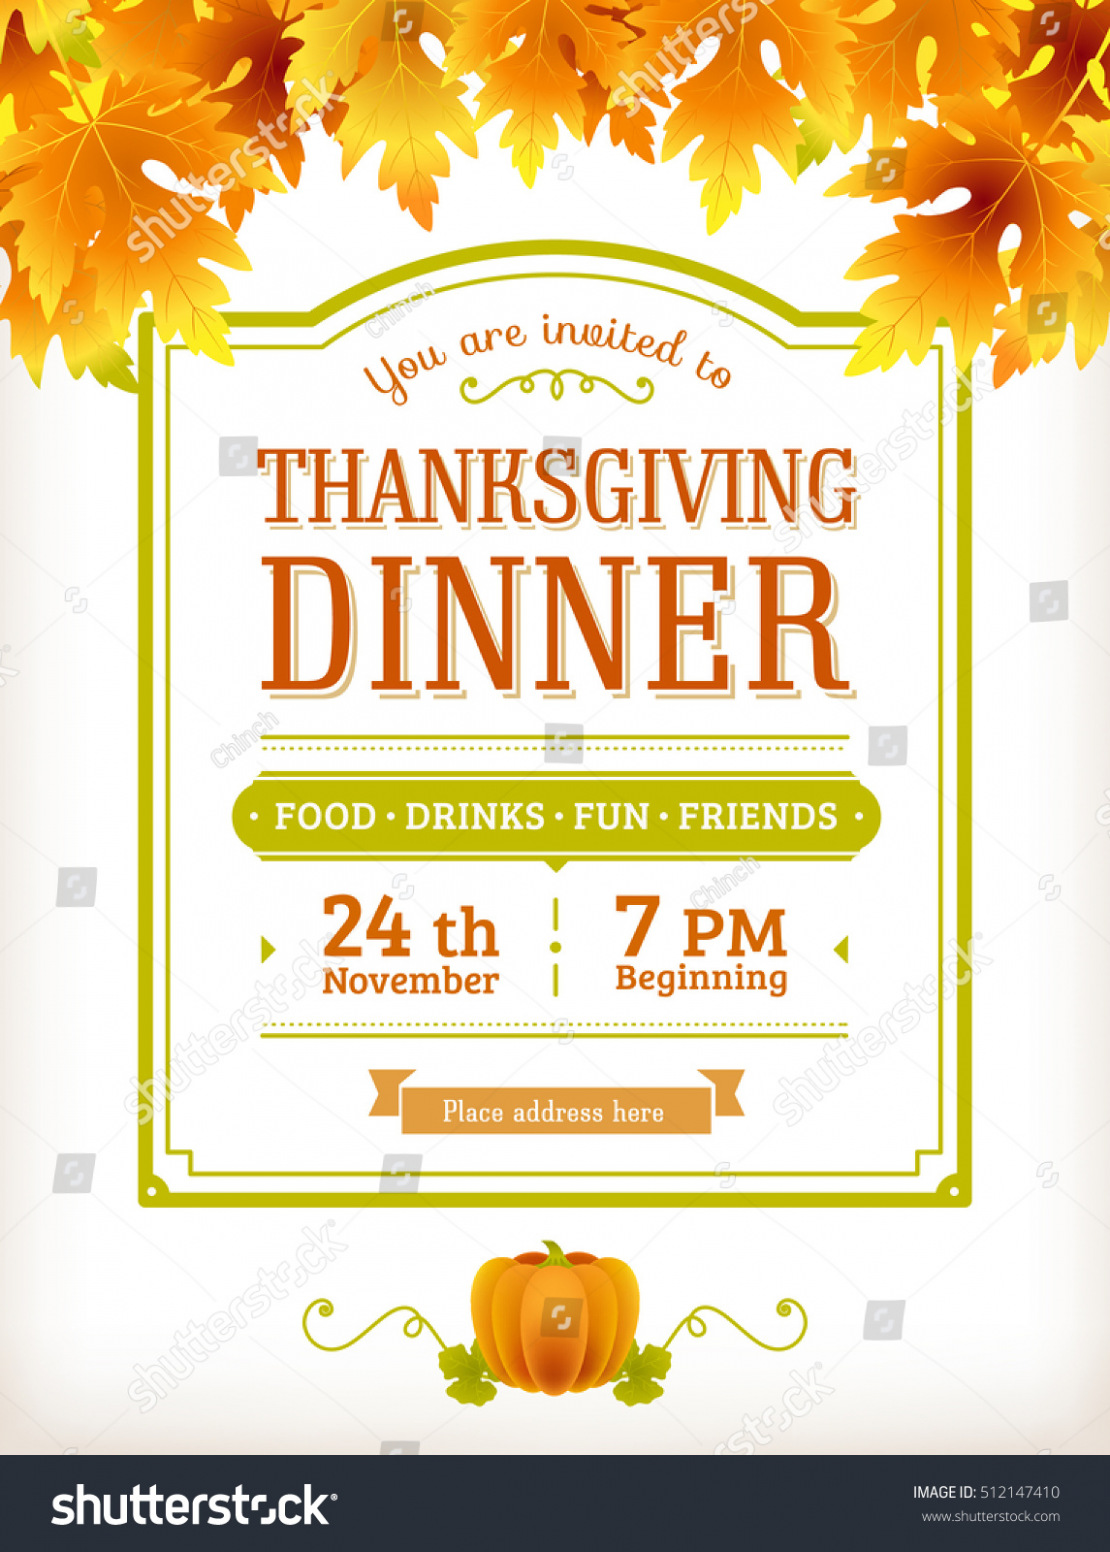 1110x1552 Download Invitation Thanksgiving Dinner Party Vector Template